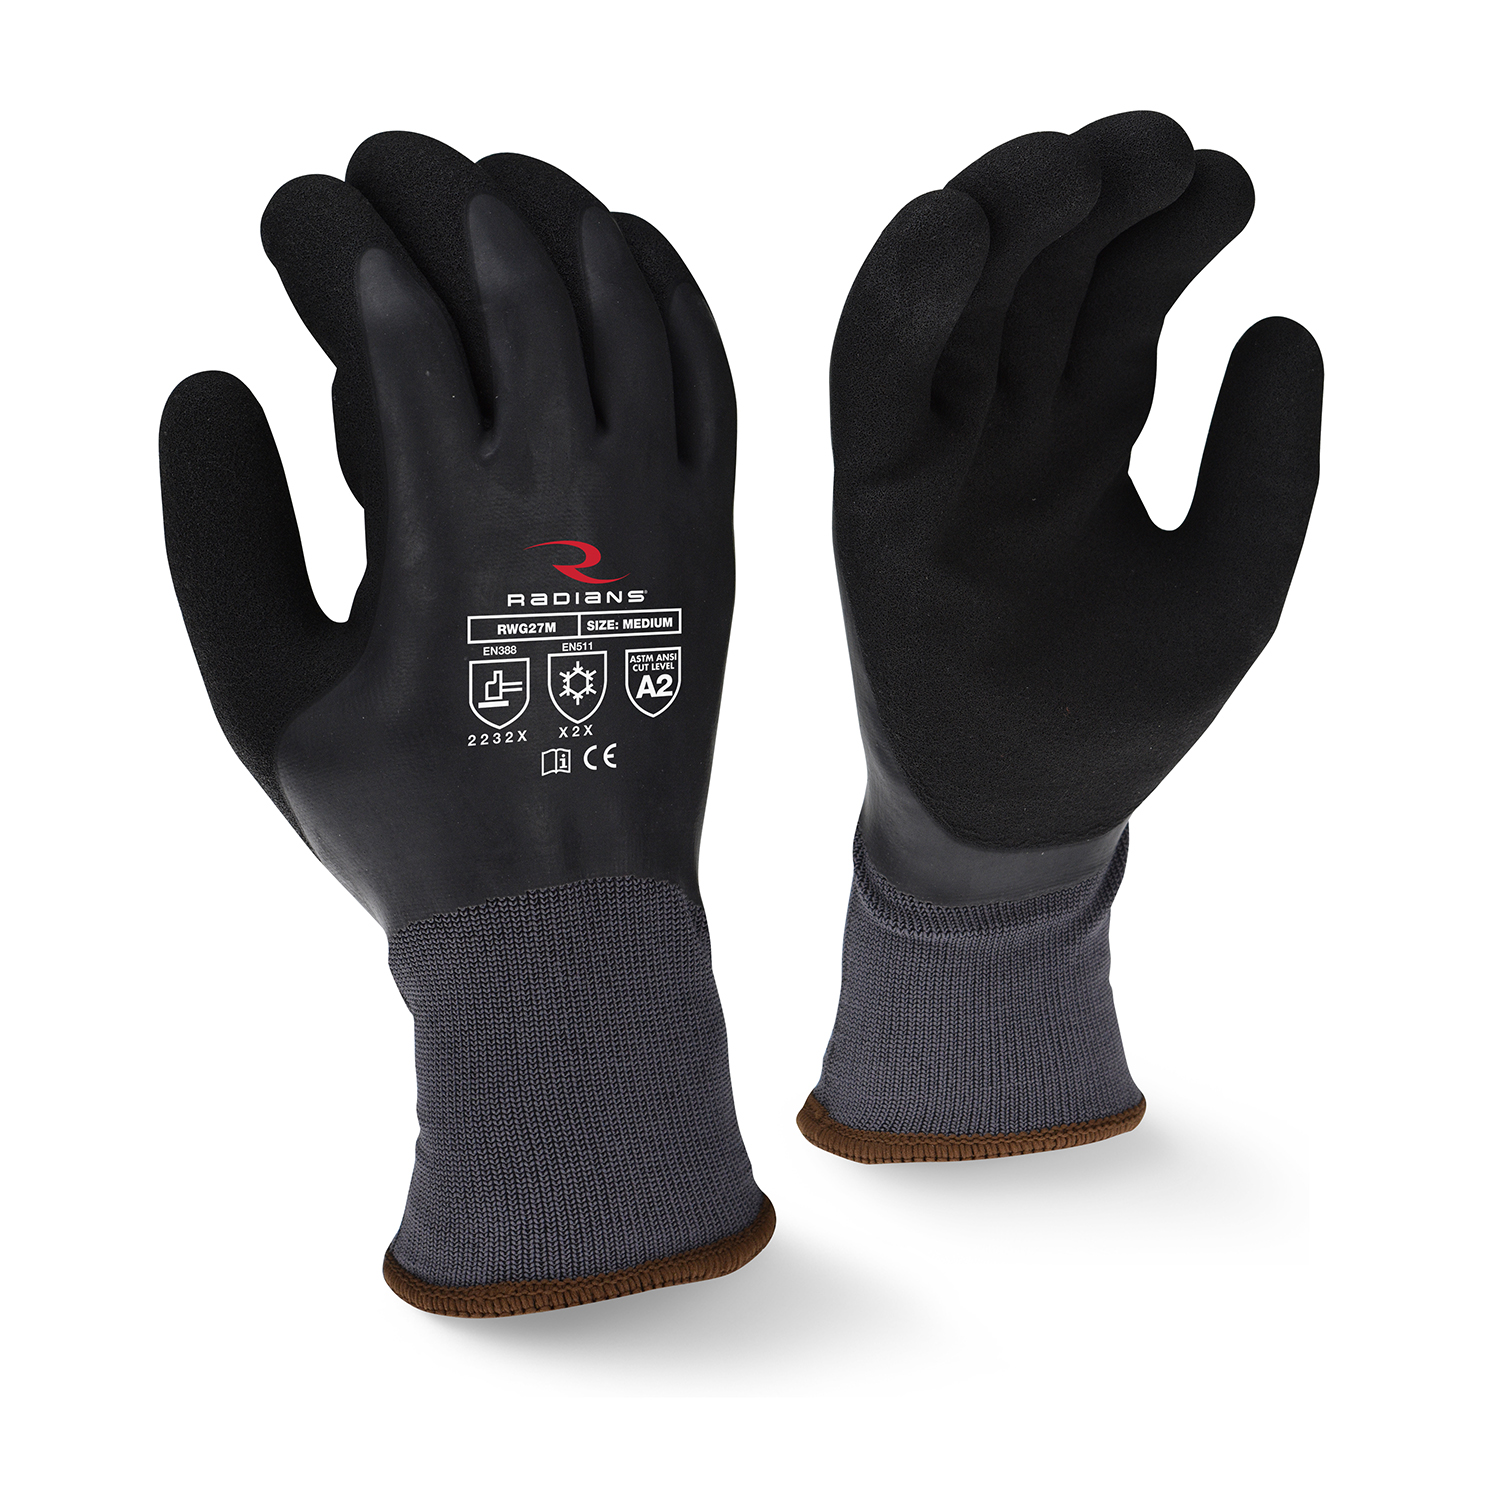 Radians RWG28 Winter Glove Gray Full Dip w/Black Sandy Latex